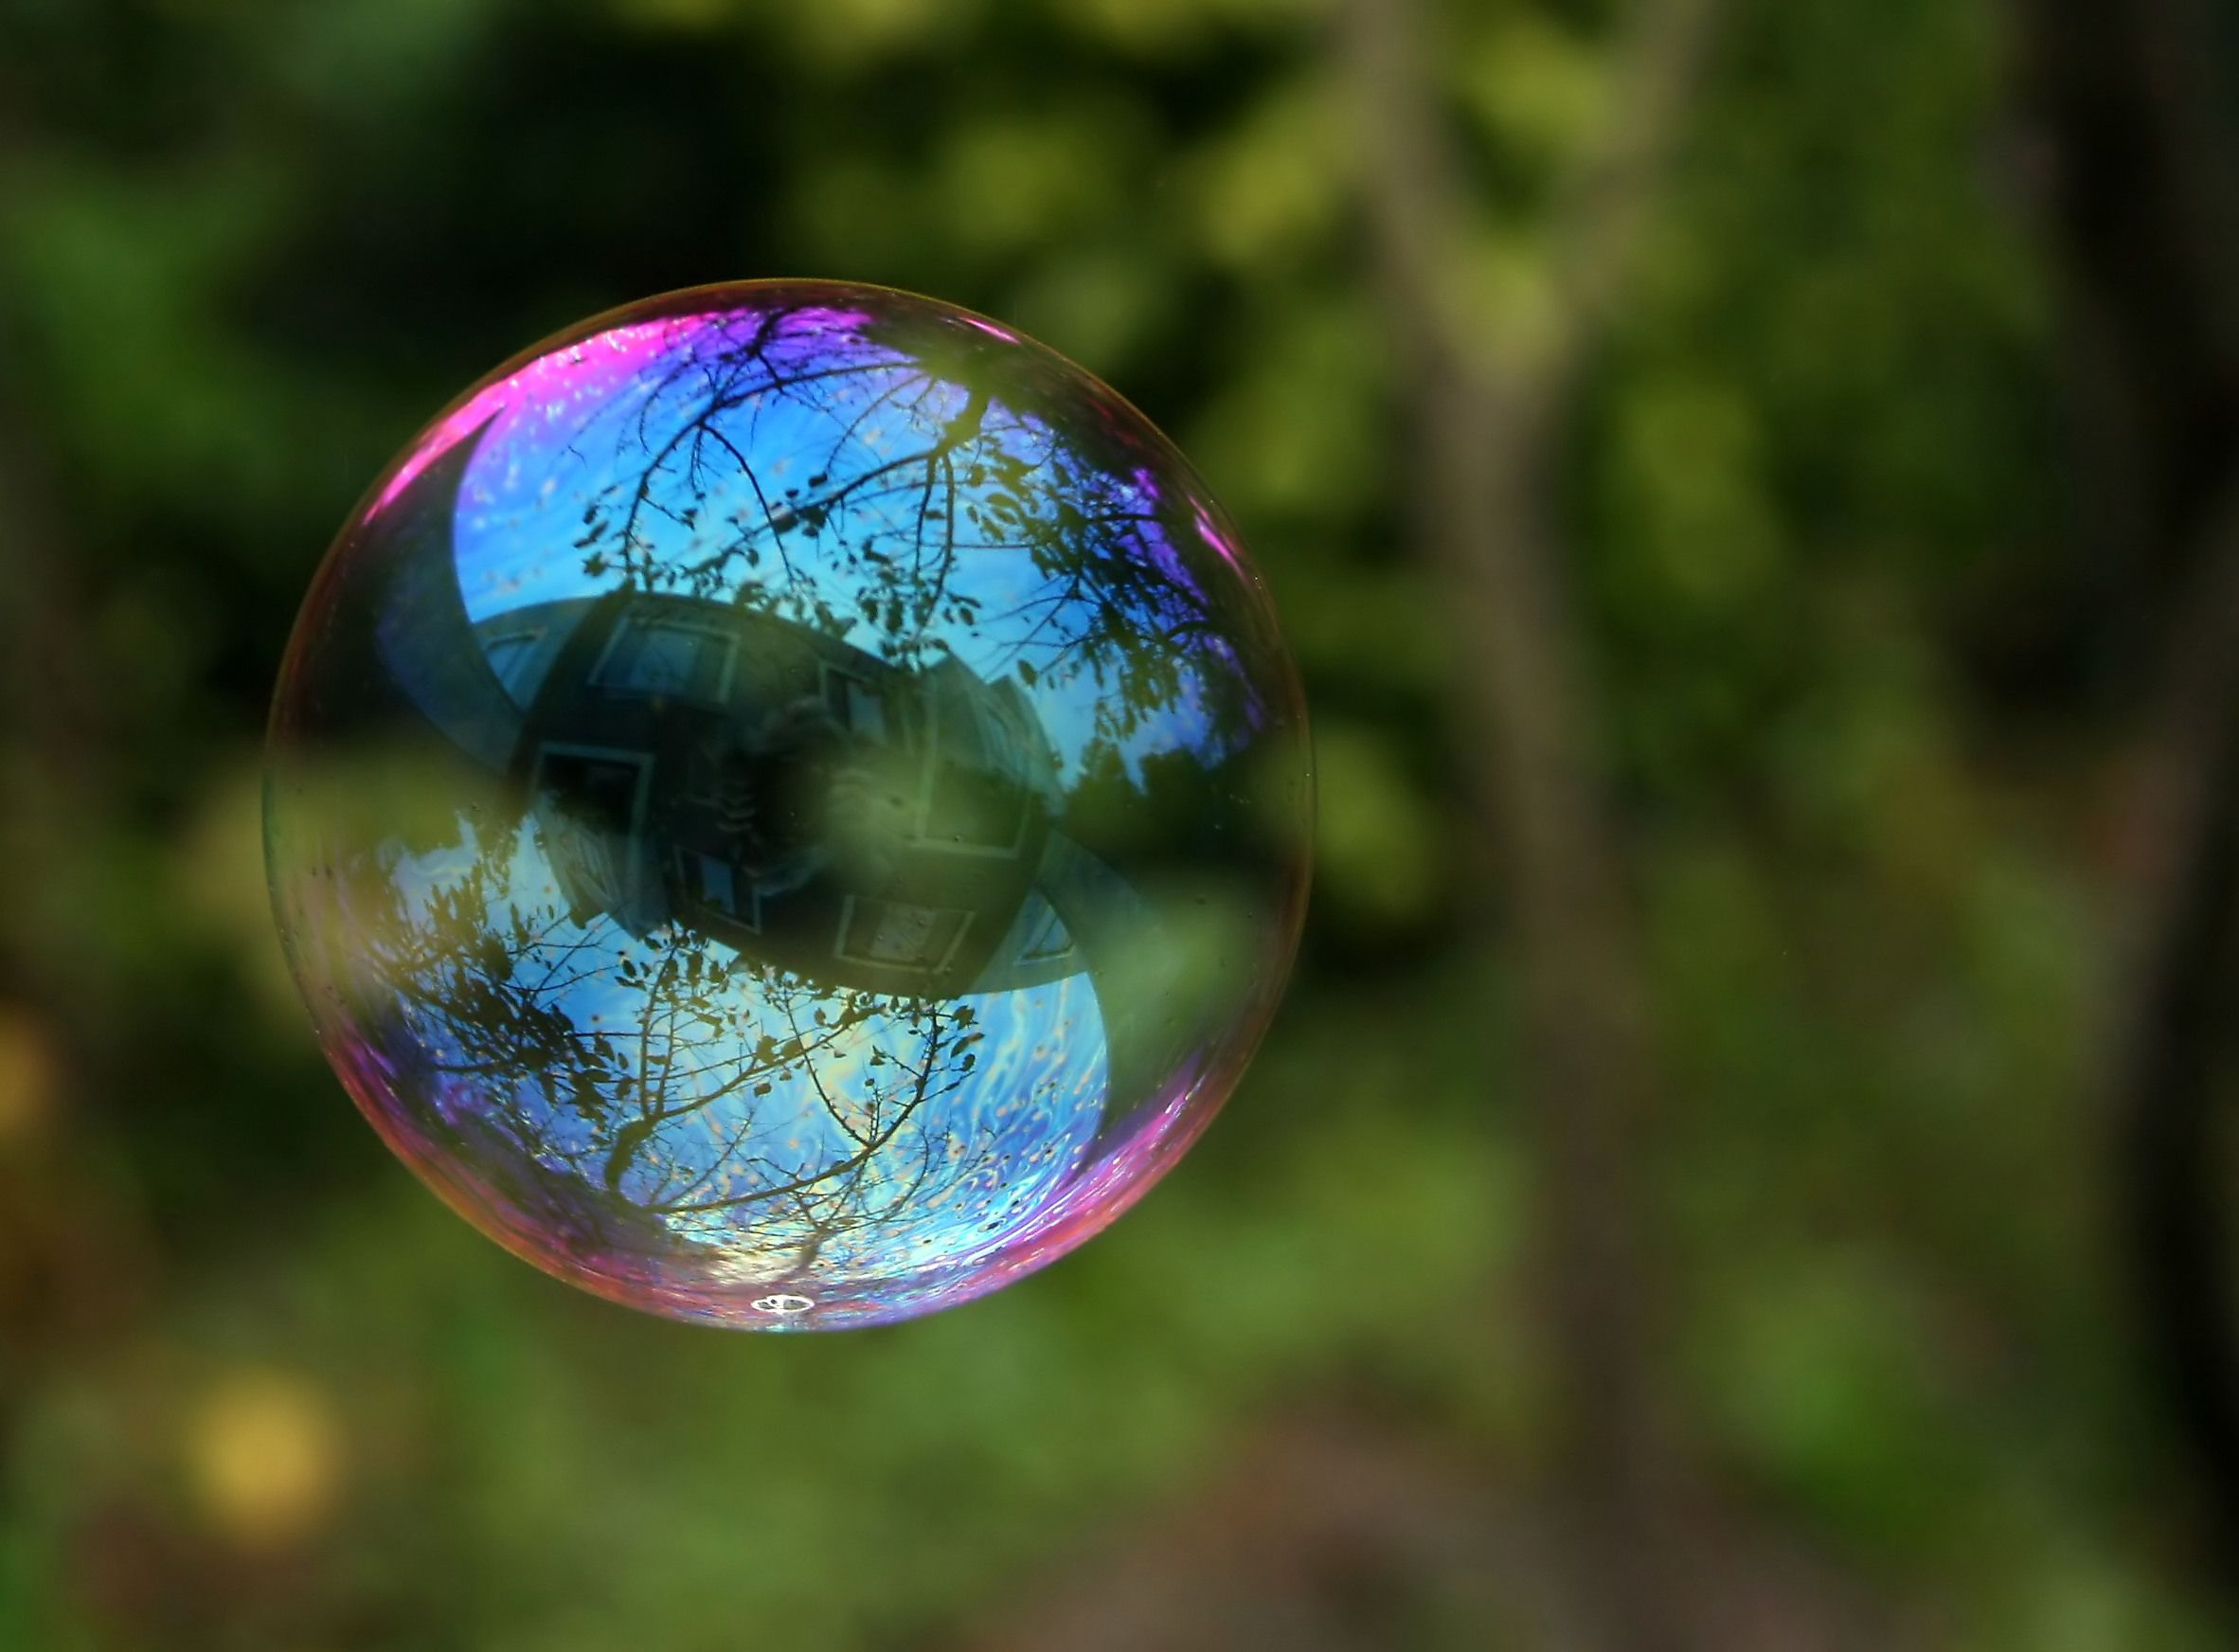 Clearing up my agenda… so I can create Homemade bubbles